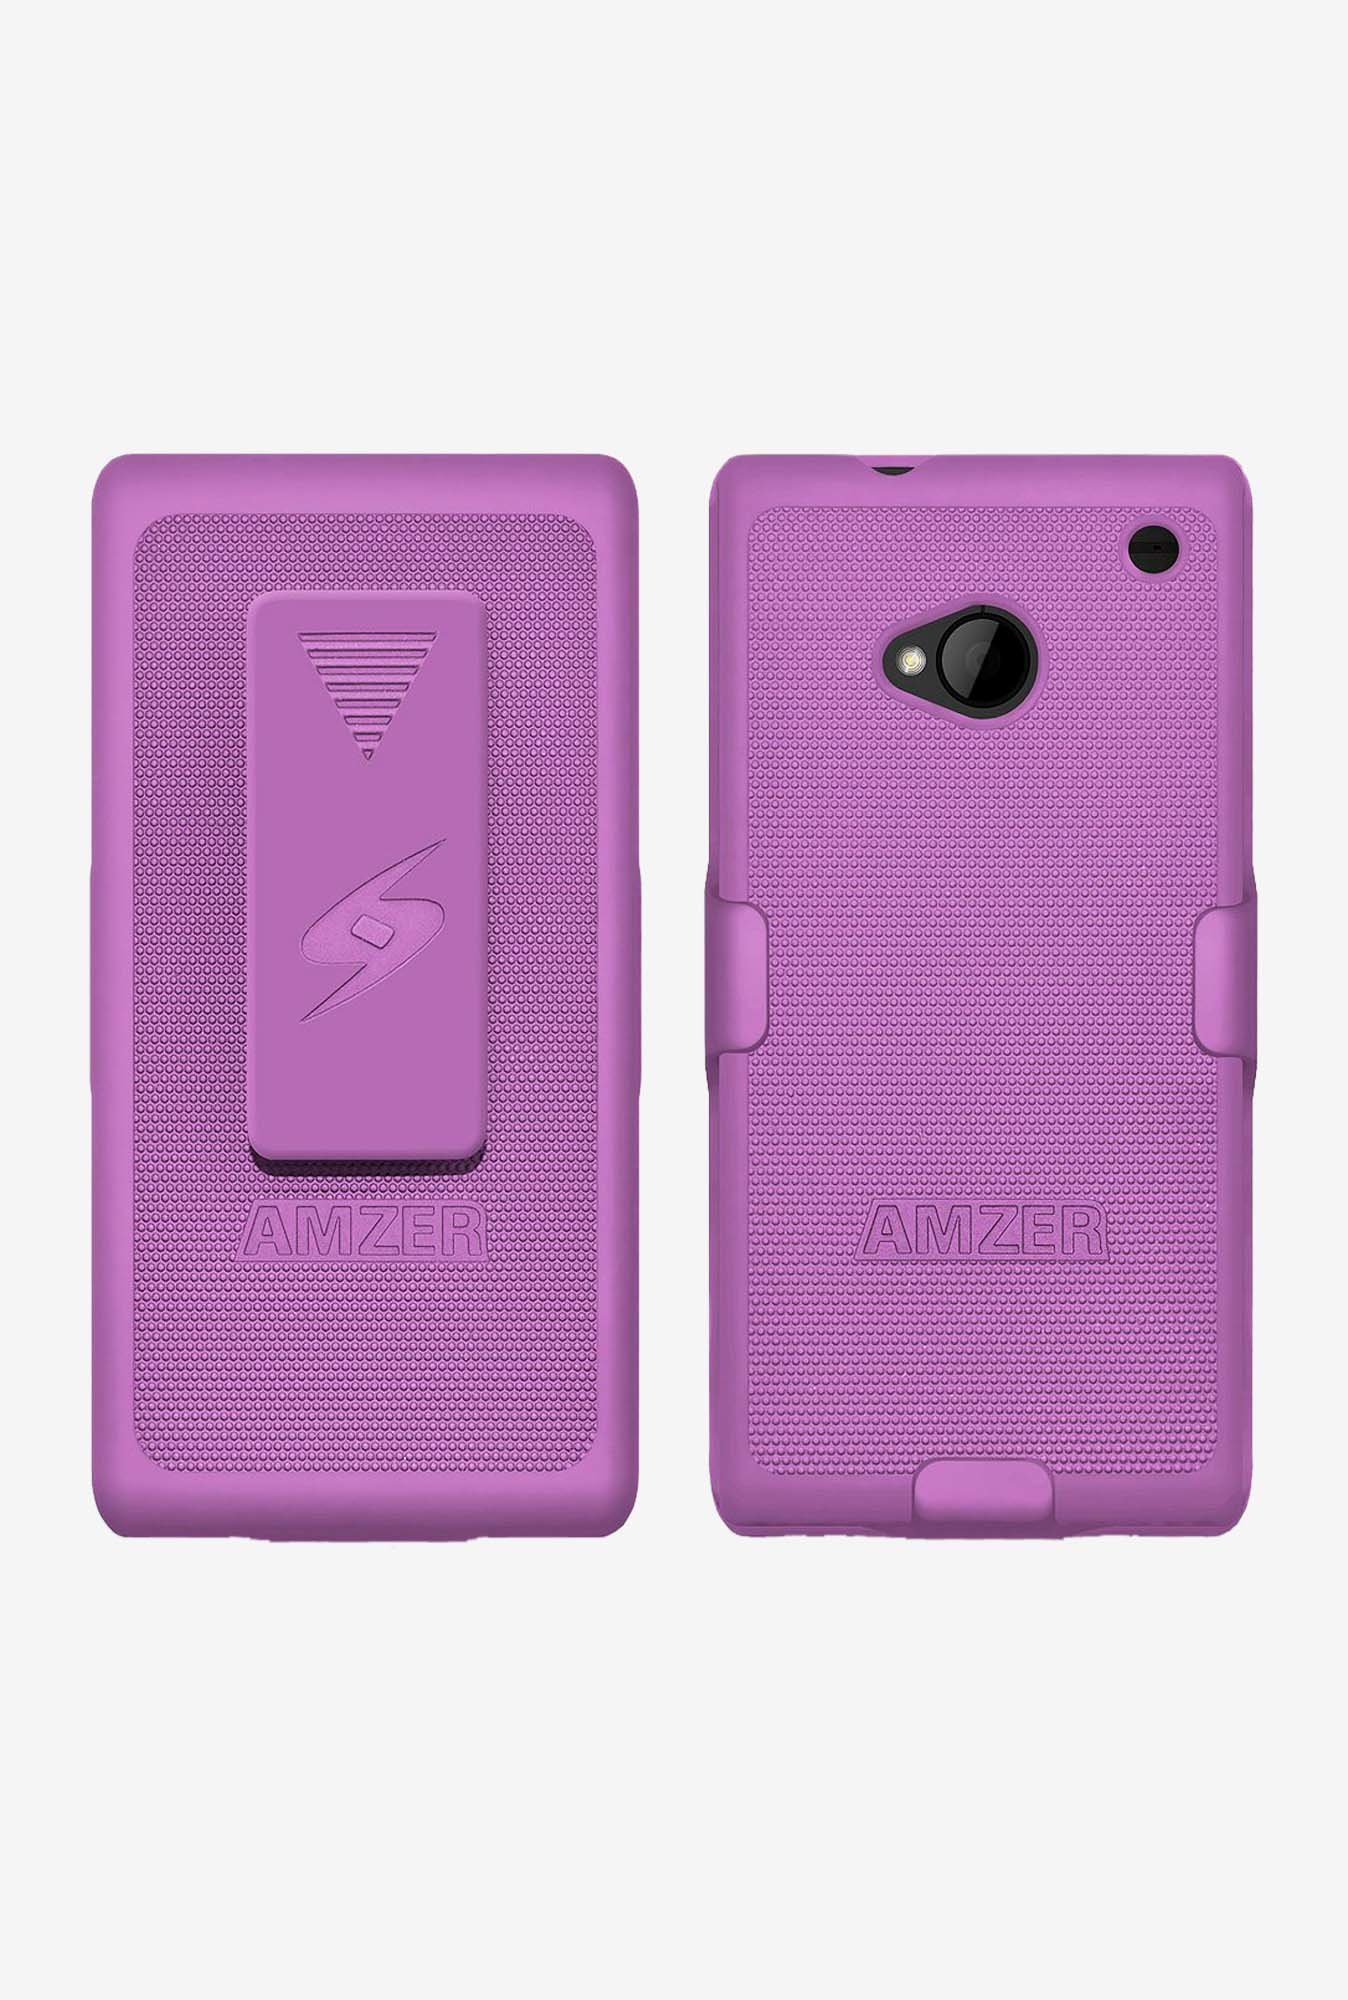 Amzer Shellster Shell Case Purple for HTC One M7